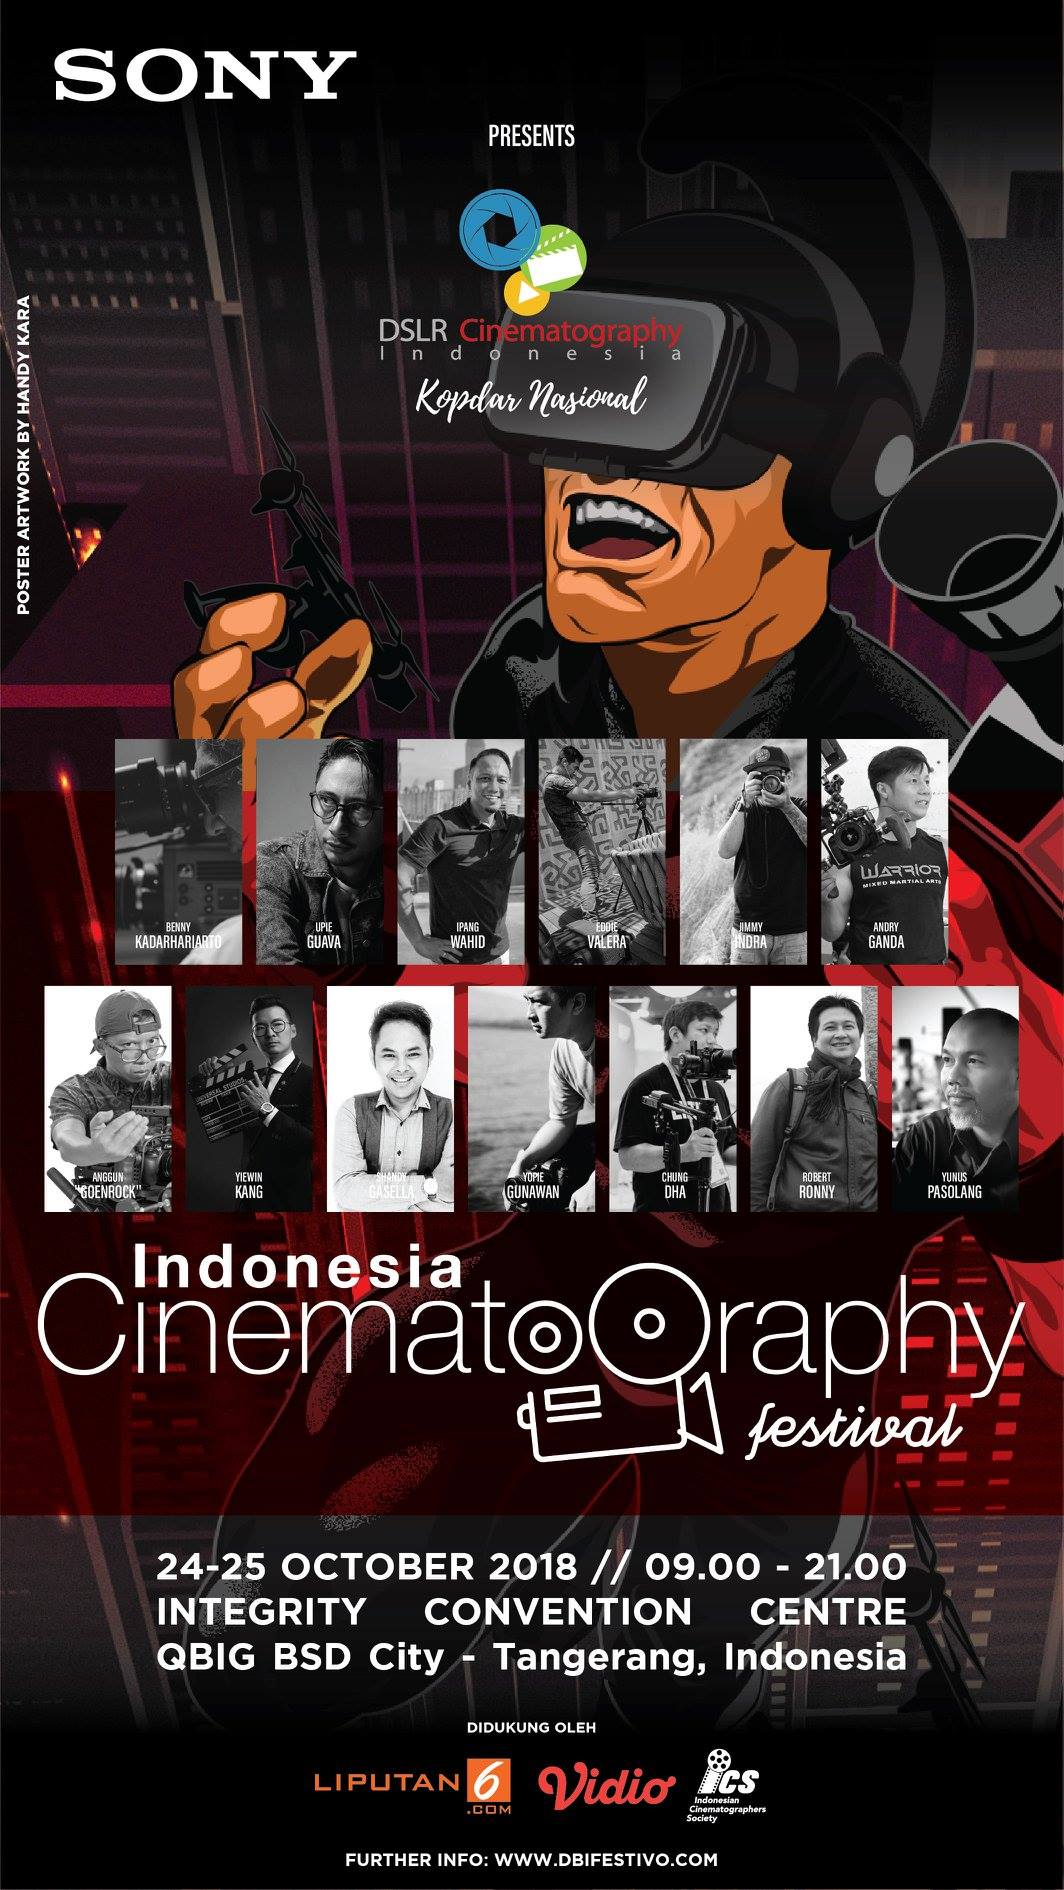 Indonesia Cinematography Festival